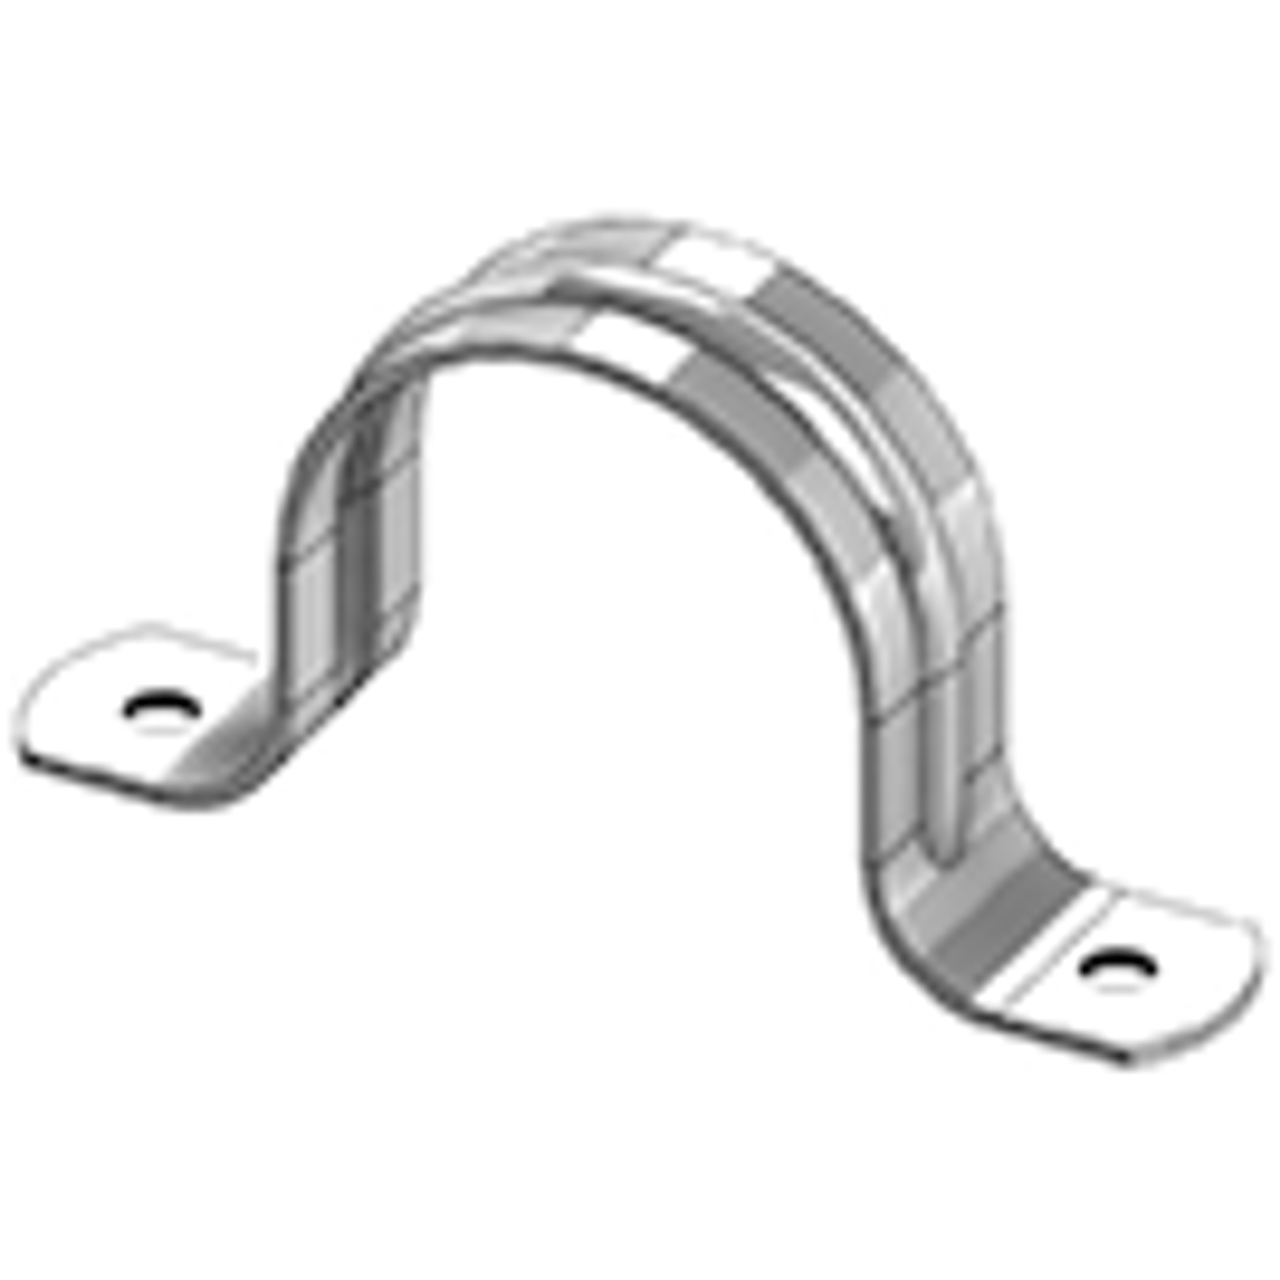 Two Hole Pipe Strap